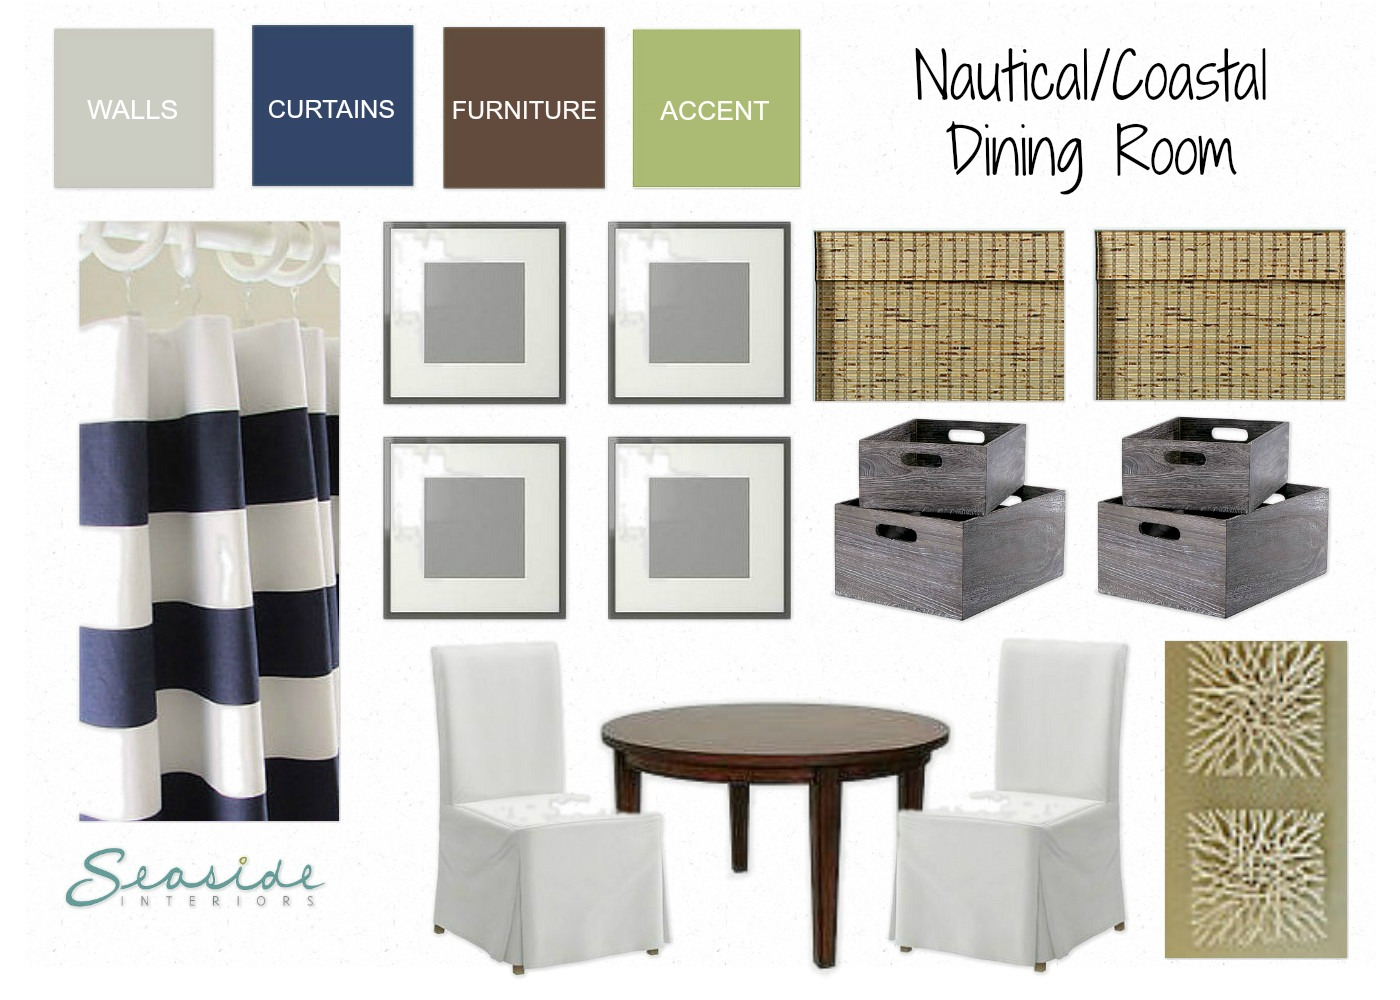 dining room items - Dining Room Items